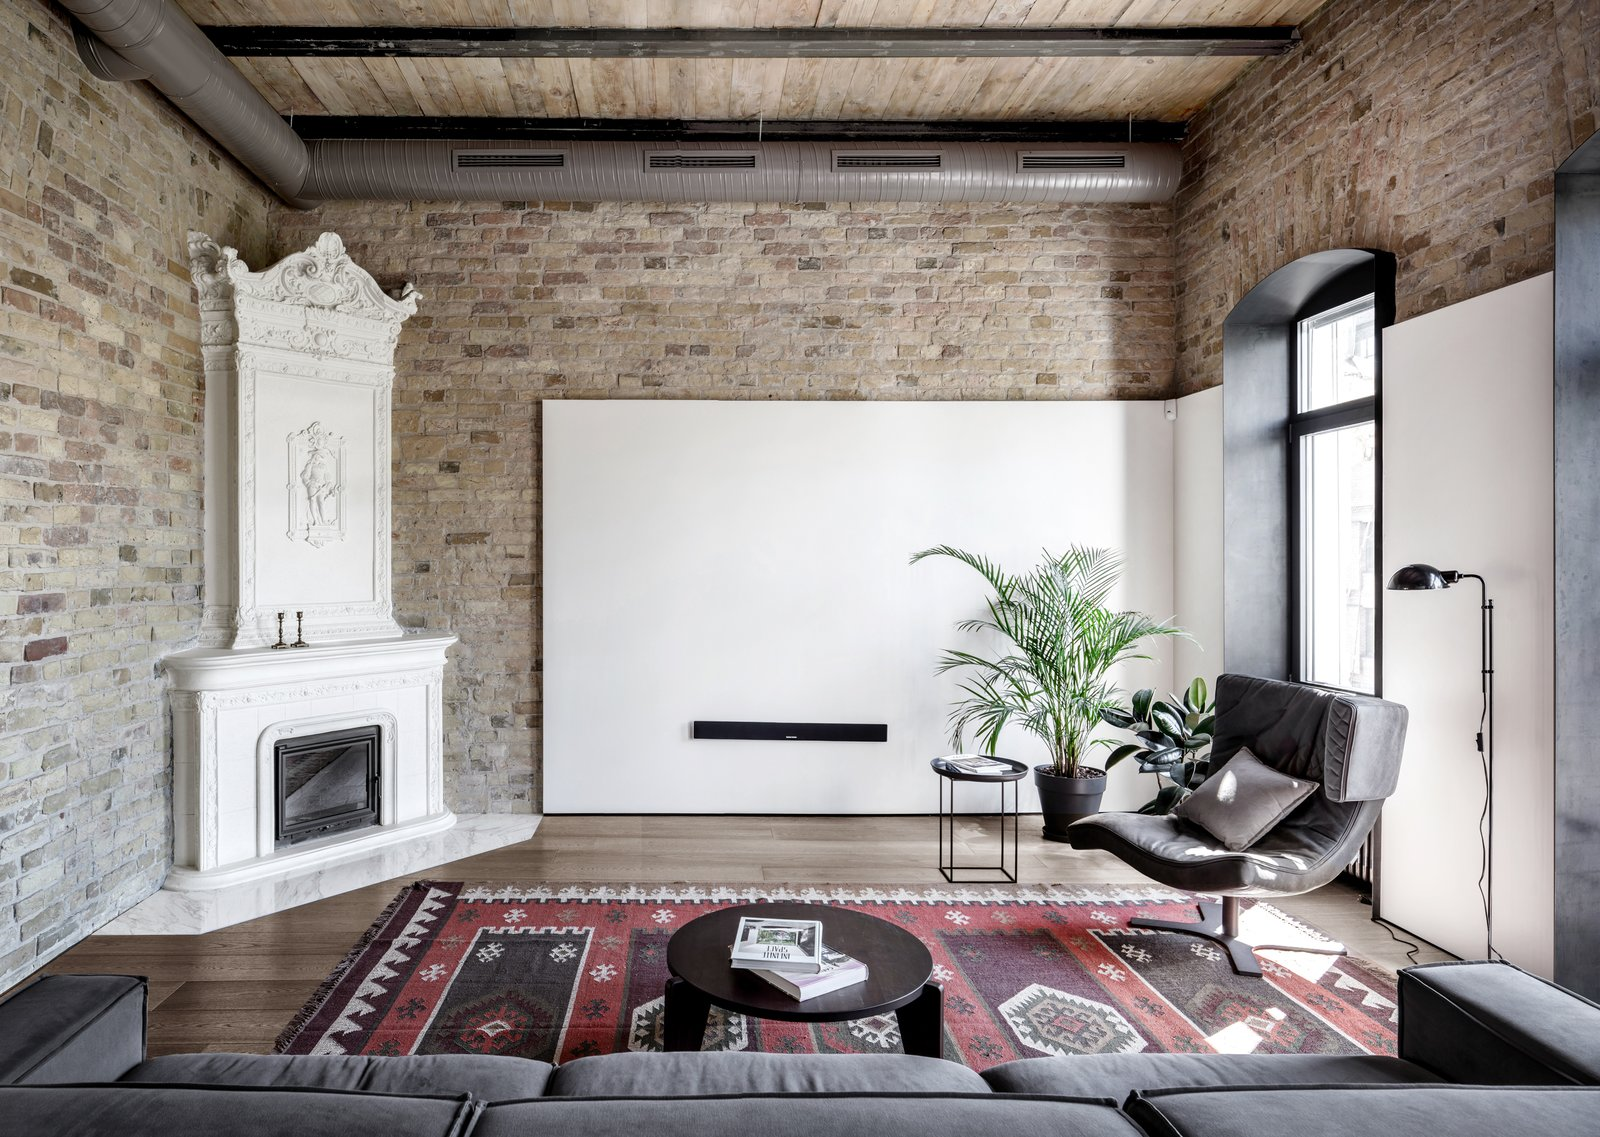 Living, Sofa, Corner, Rug, Medium Hardwood, Floor, Chair, Lamps, Standard Layout, Coffee Tables, End Tables, and Gas Burning Jaipur Zinfandel carpet.  Living Medium Hardwood Standard Layout Corner Photos from A Monochromatic Palette Unifies Old and New in This Ukrainian Bachelor Pad